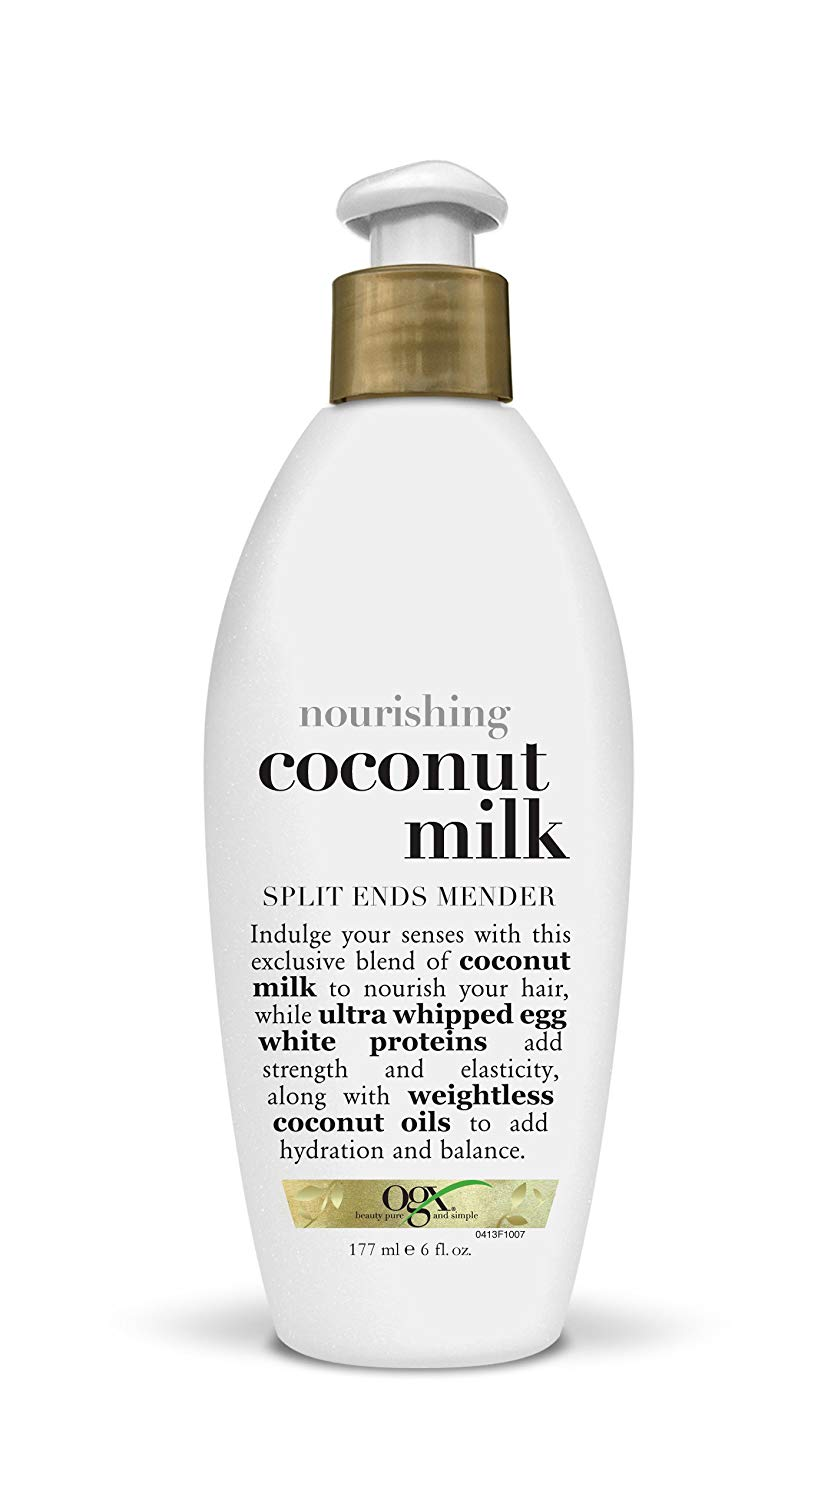 Nourishing Coconut Milk